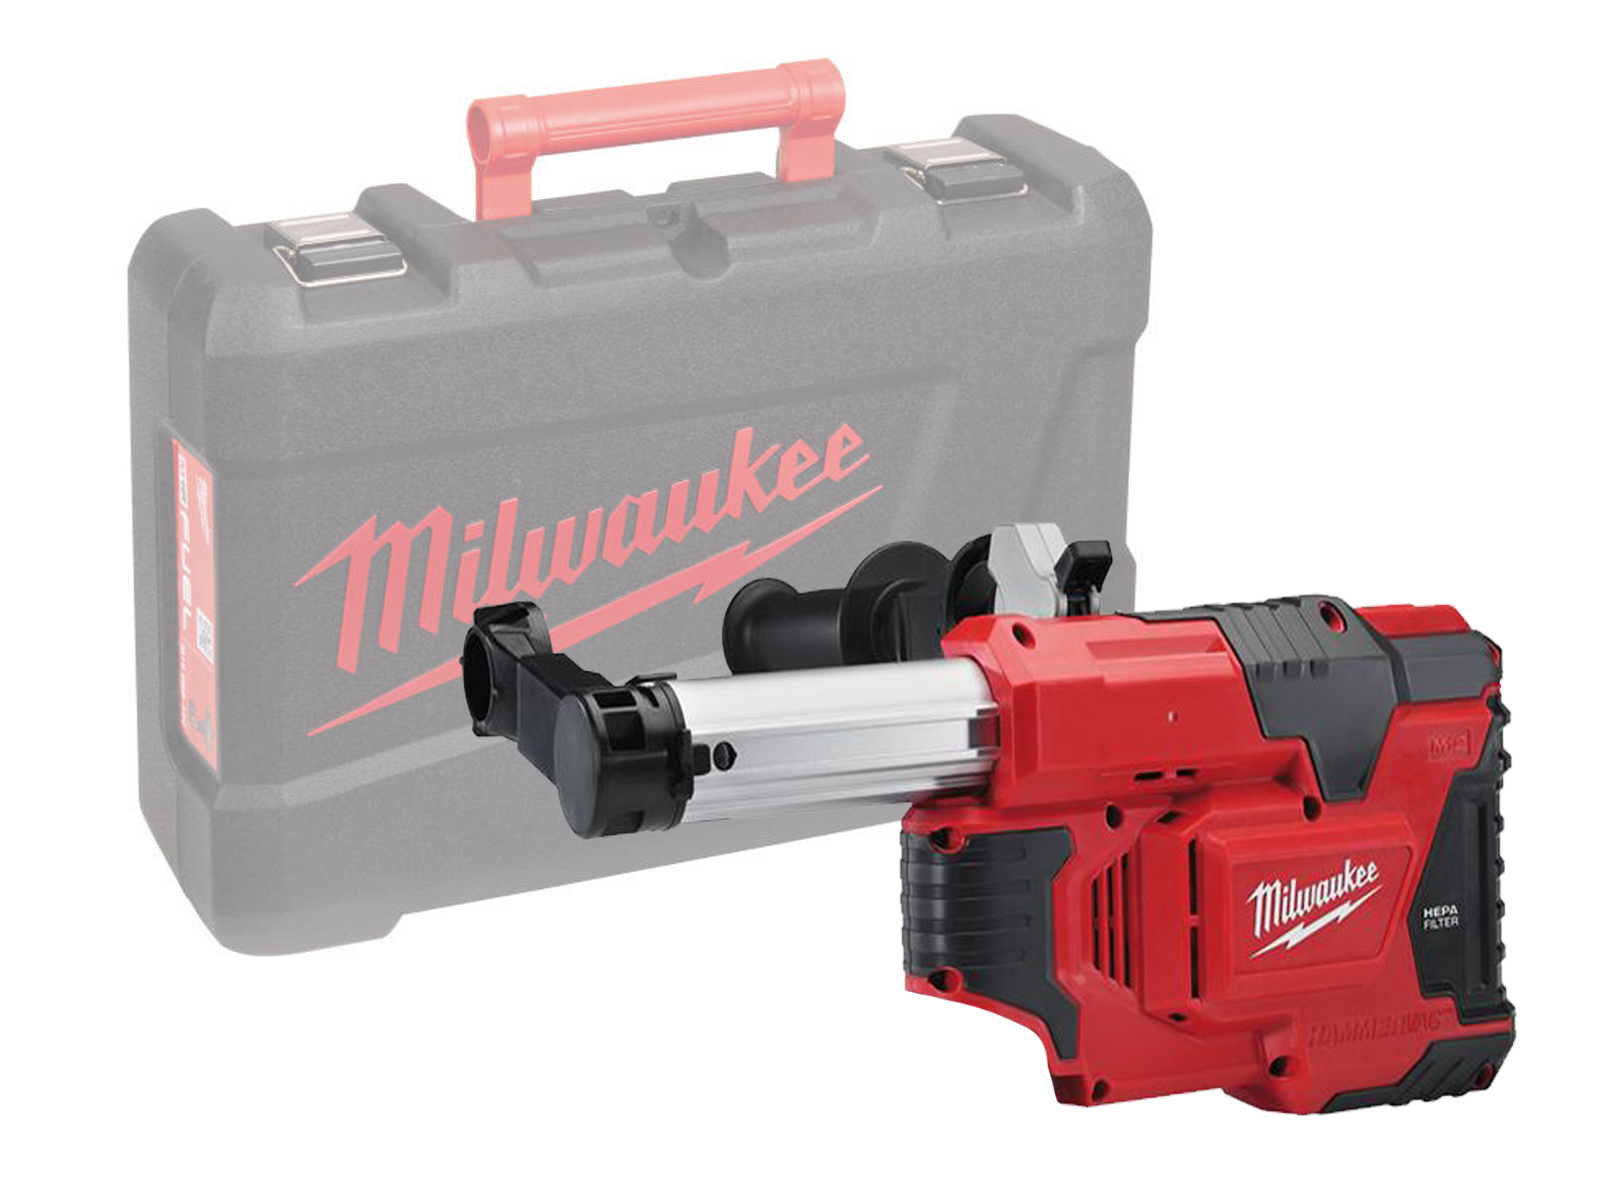 MILWAUKEE 12V UNIVERSAL DUST EXTRACTOR - M12DE - BODY ONLY